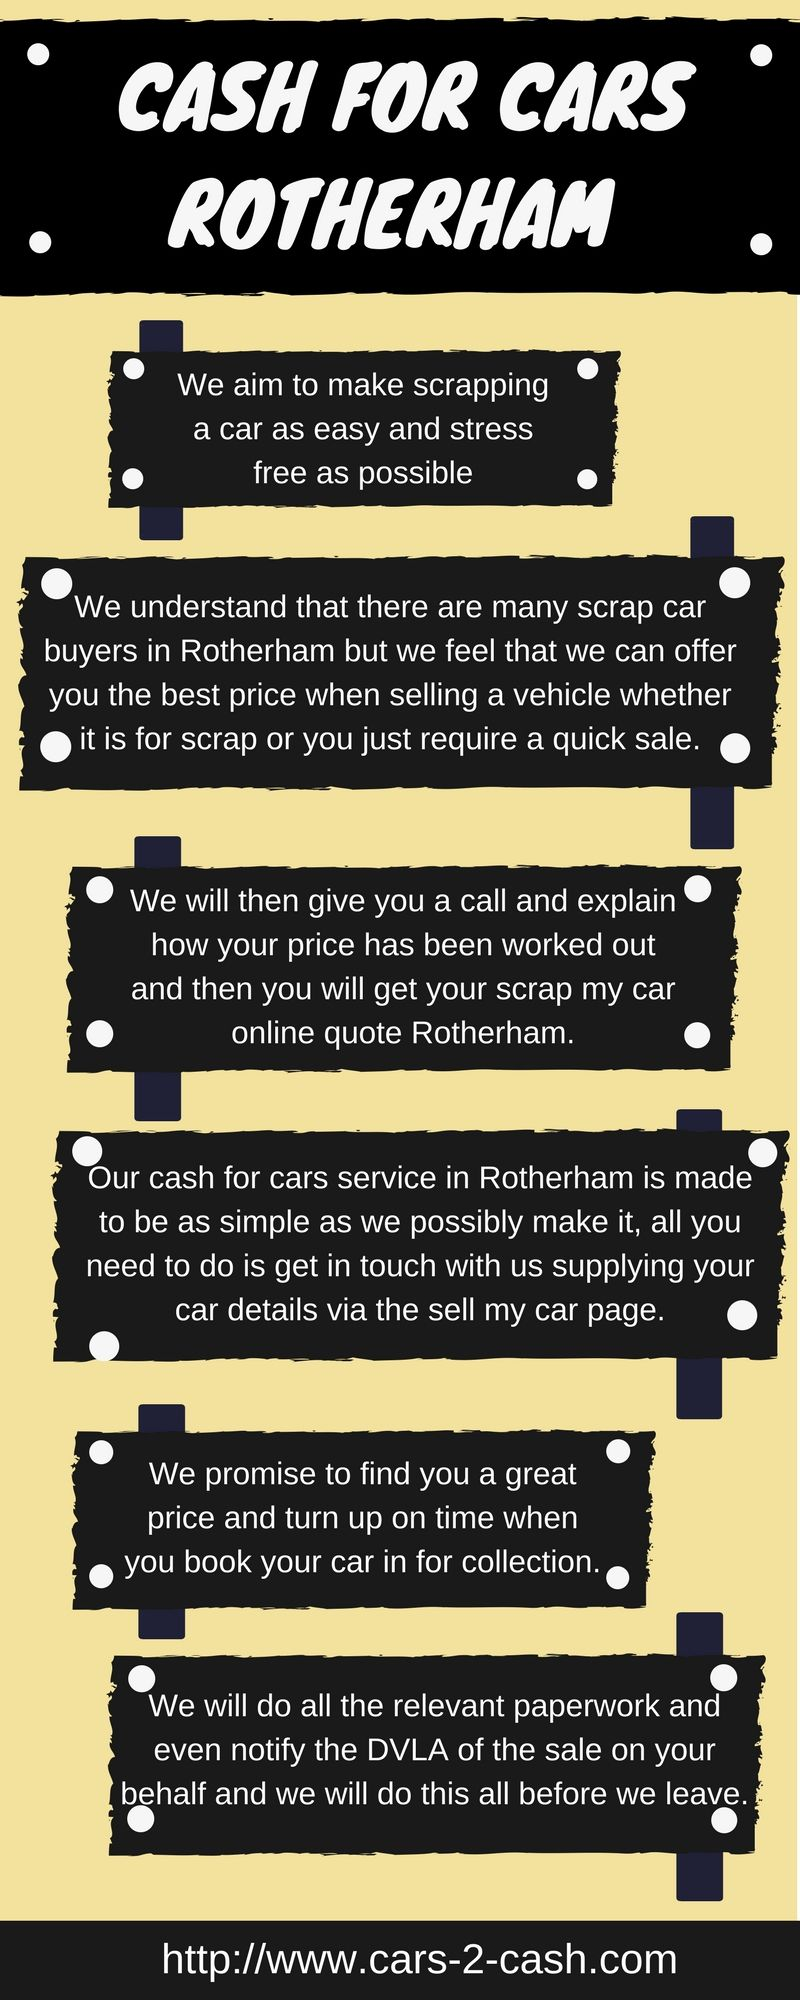 We aim to make scrapping a car as easy and stress free as possible ...